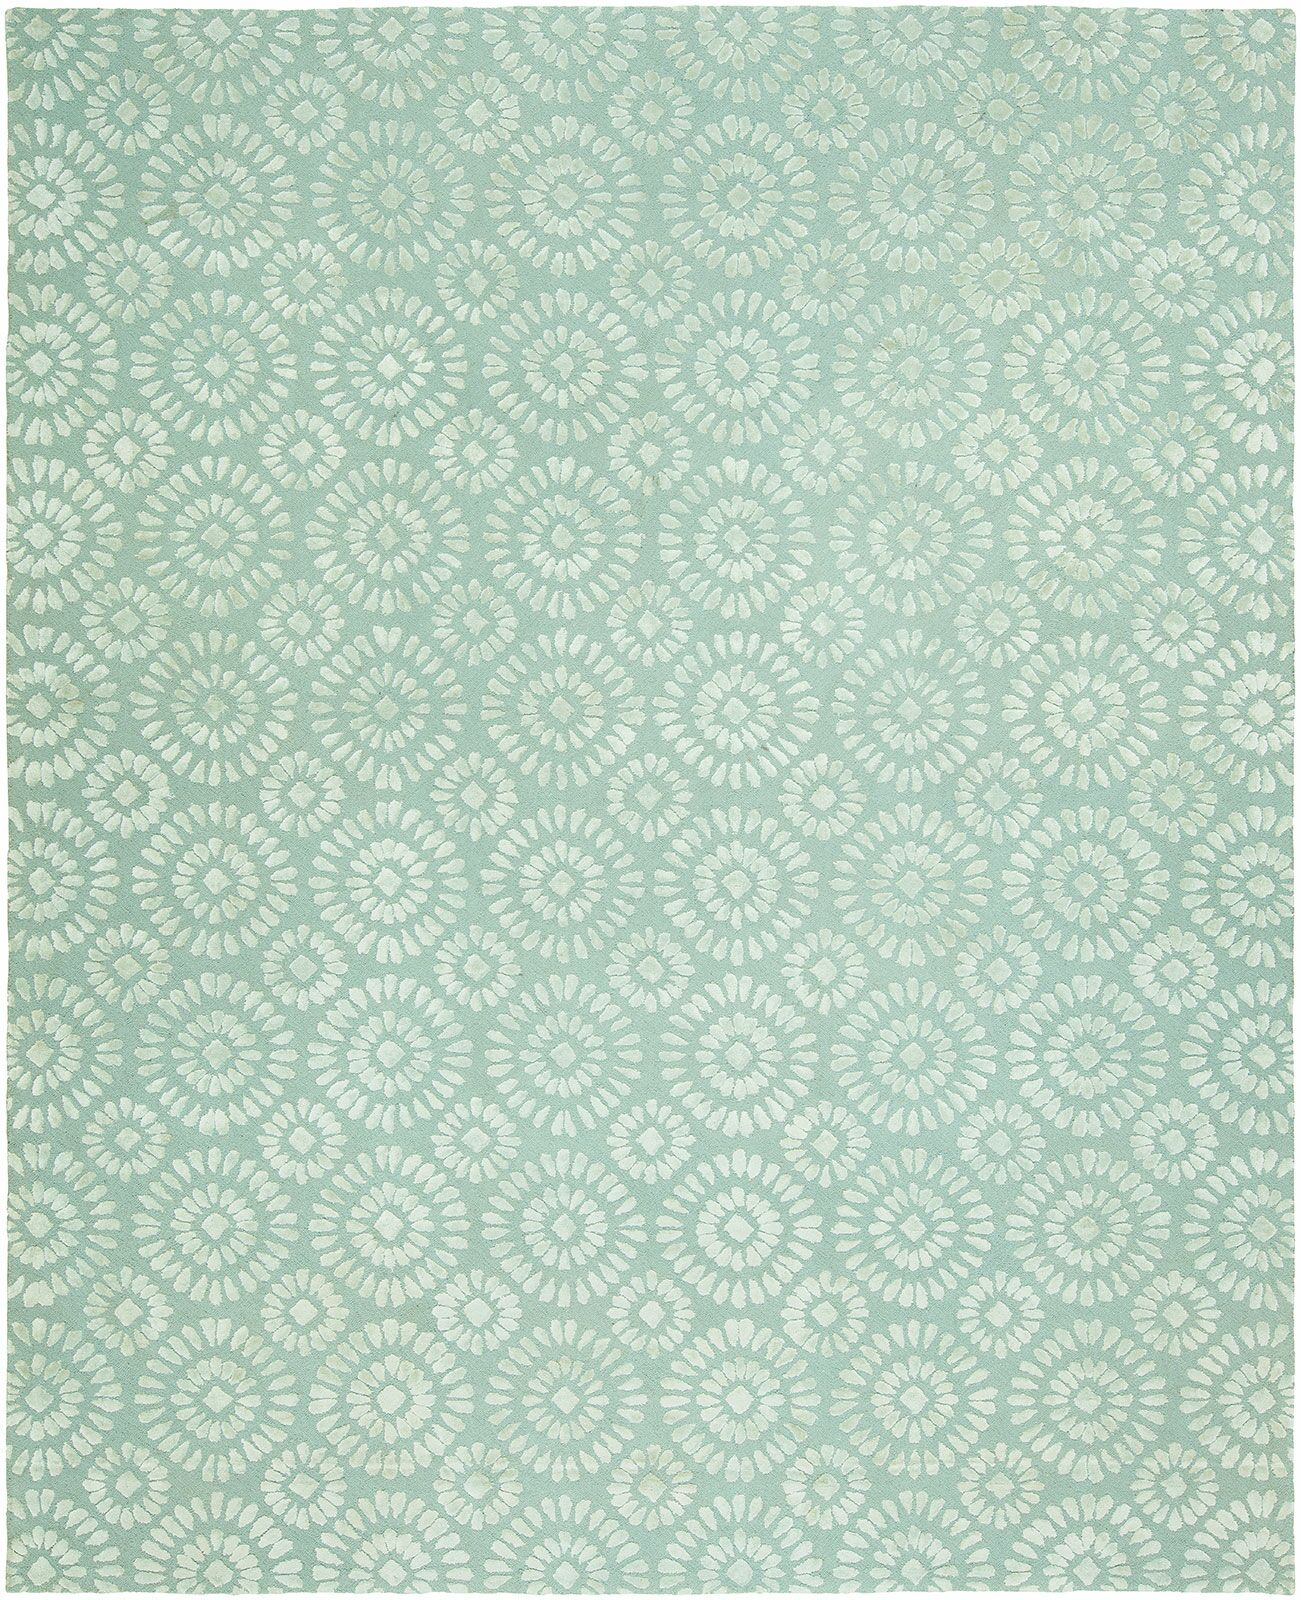 Nathalia Hand-Tufted Wool Blue Area Rug Rug Size: Runner 2'6